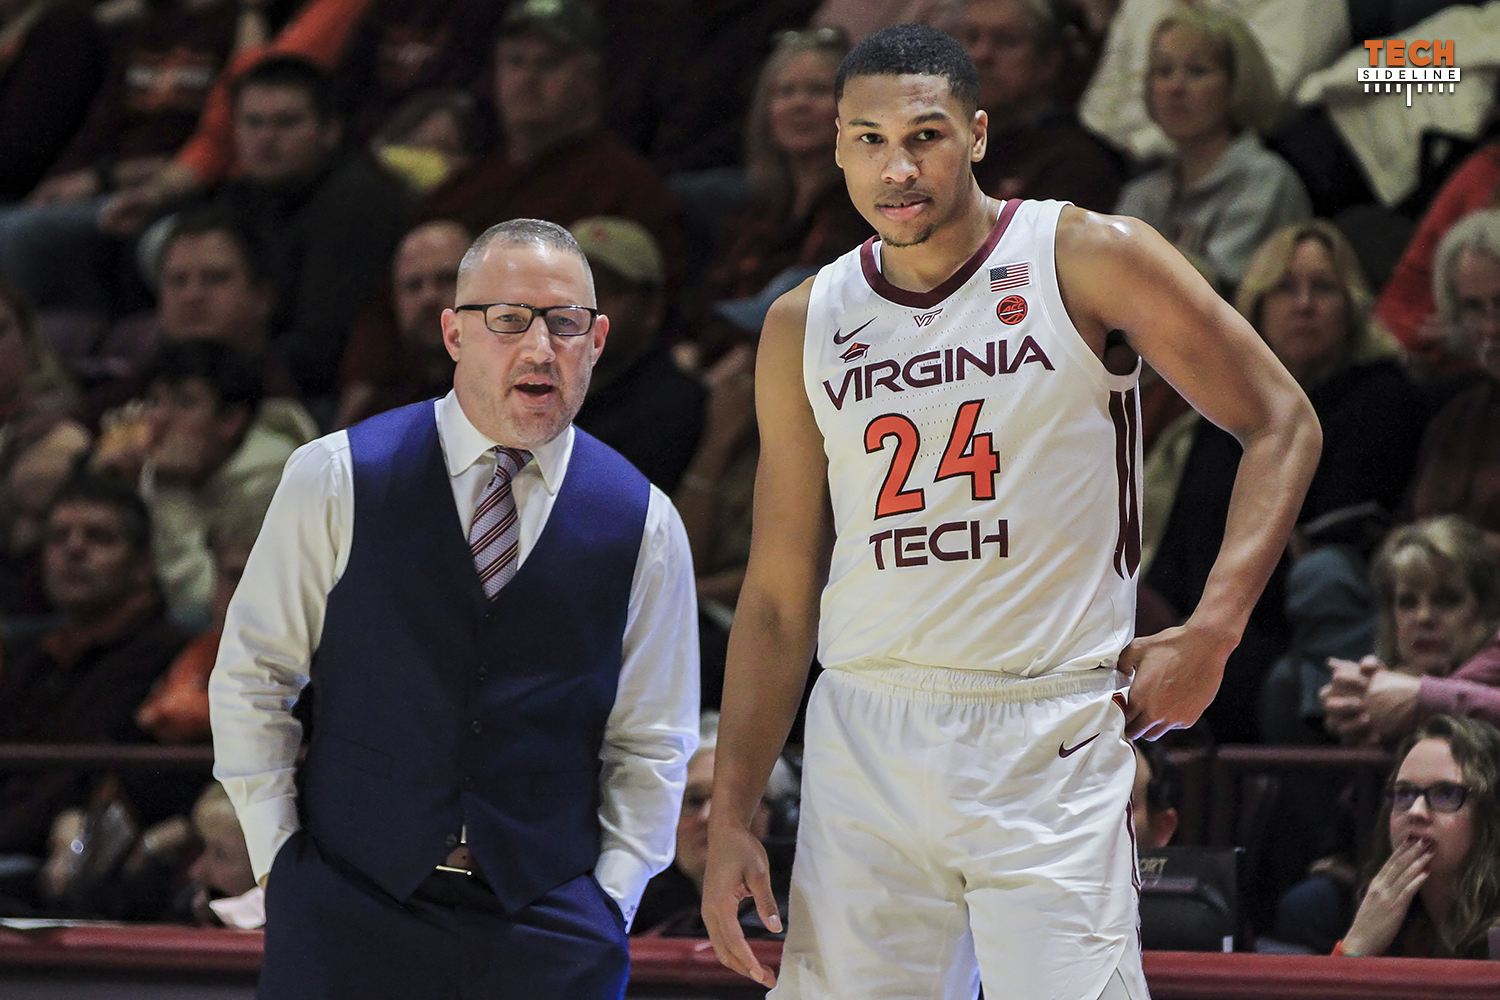 Virginia Tech Bracketology